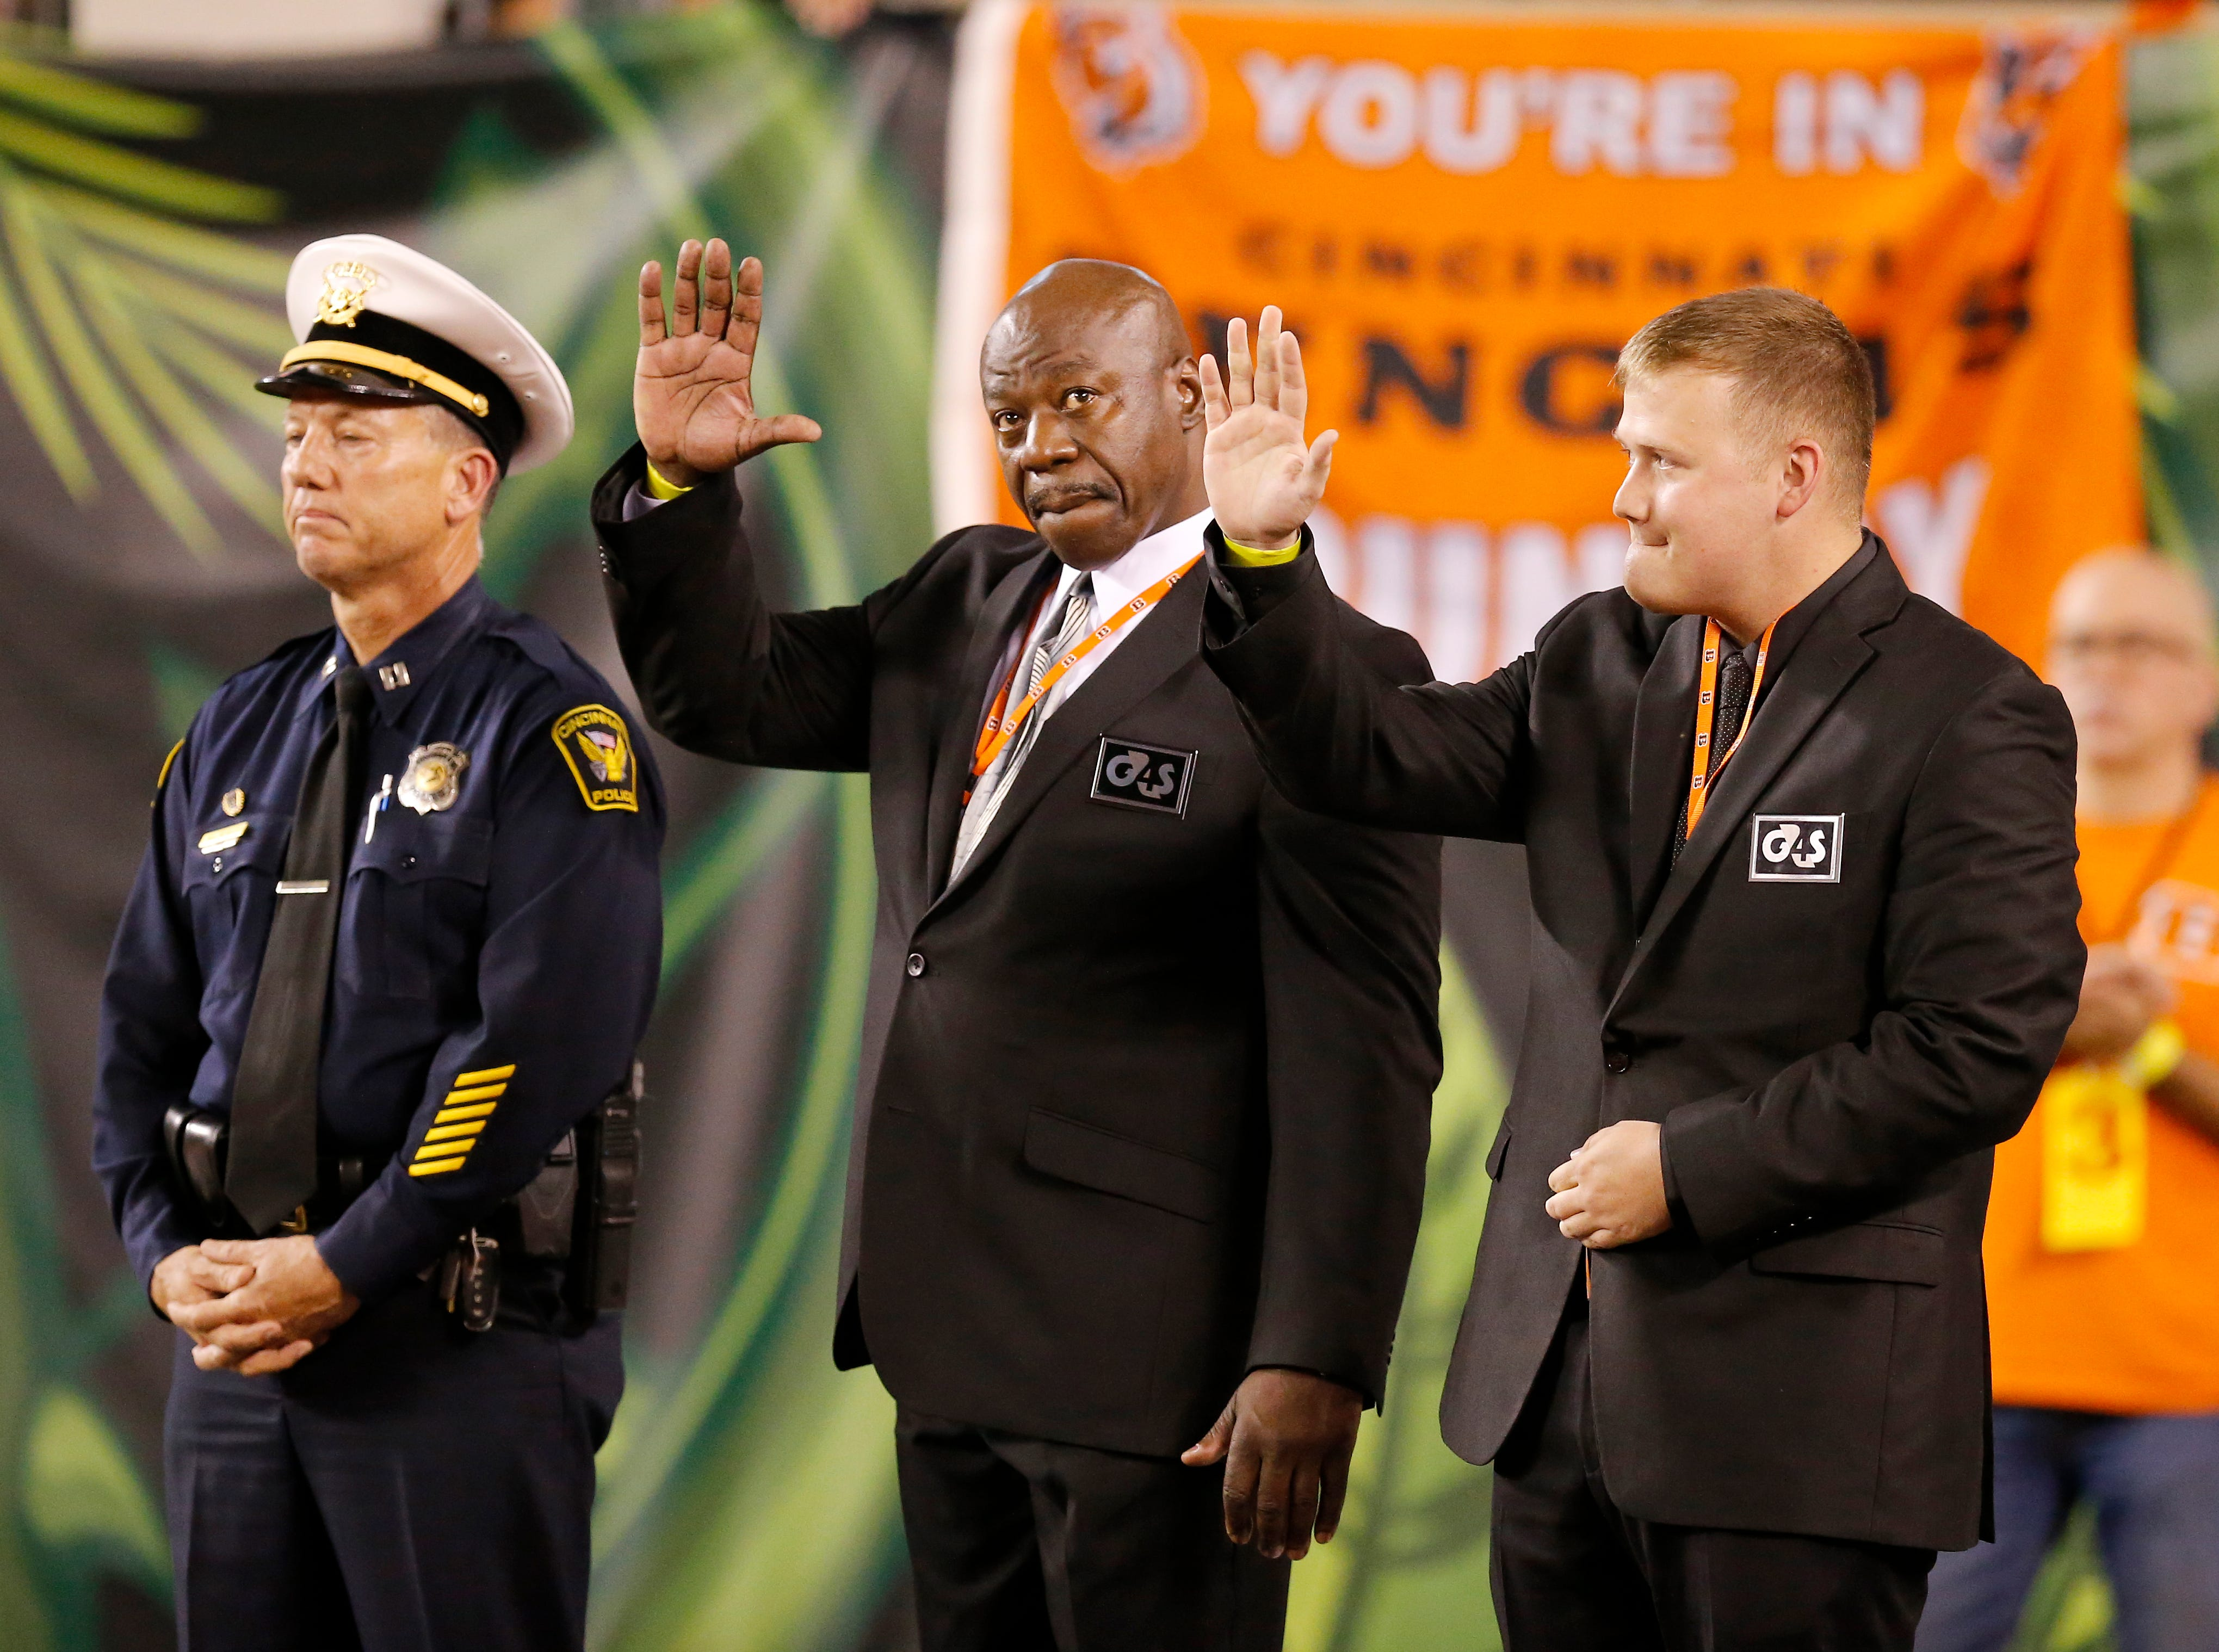 Members of the 5/3 Bank security team is honored on the field during the first quarter of the NFL Week 2 game between the Cincinnati Bengals and the Baltimore Ravens at Paul Brown Stadium in downtown Cincinnati on Thursday, Sept. 13, 2018. The Bengals led 28-14 at halftime.